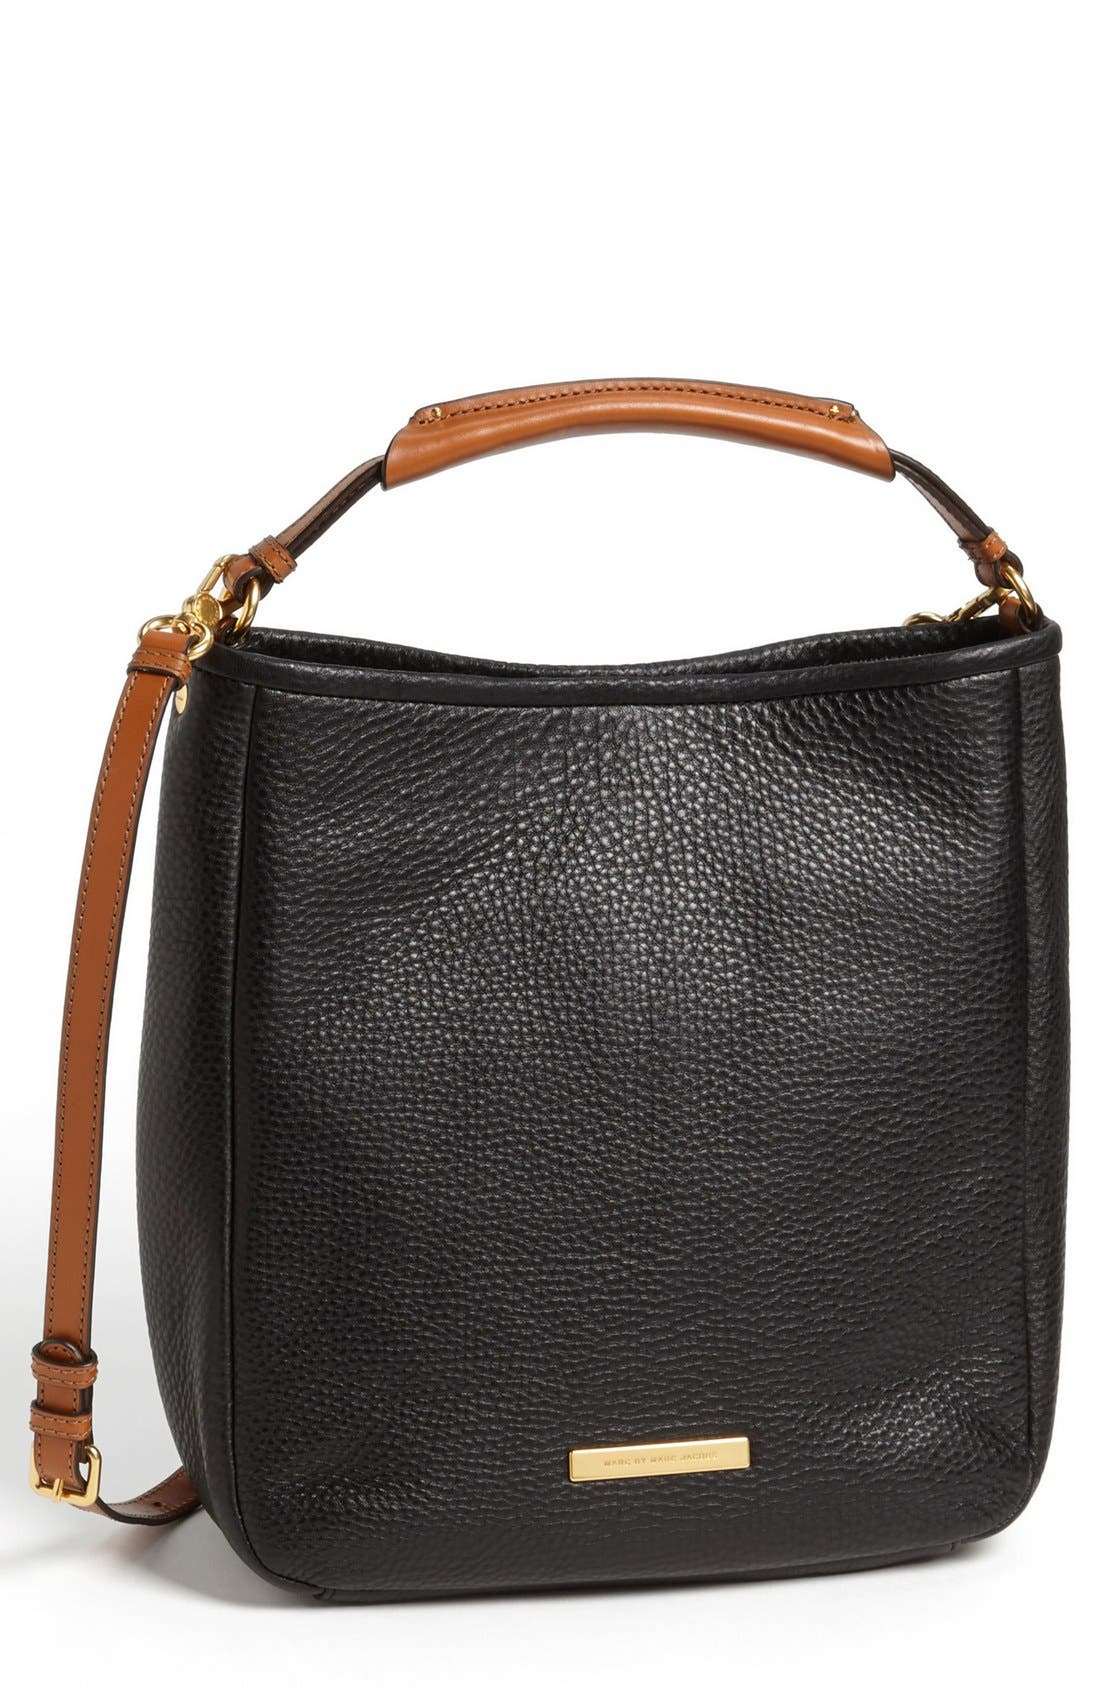 Alternate Image 1 Selected - MARC BY MARC JACOBS 'Large Softy Saddle' Leather Hobo